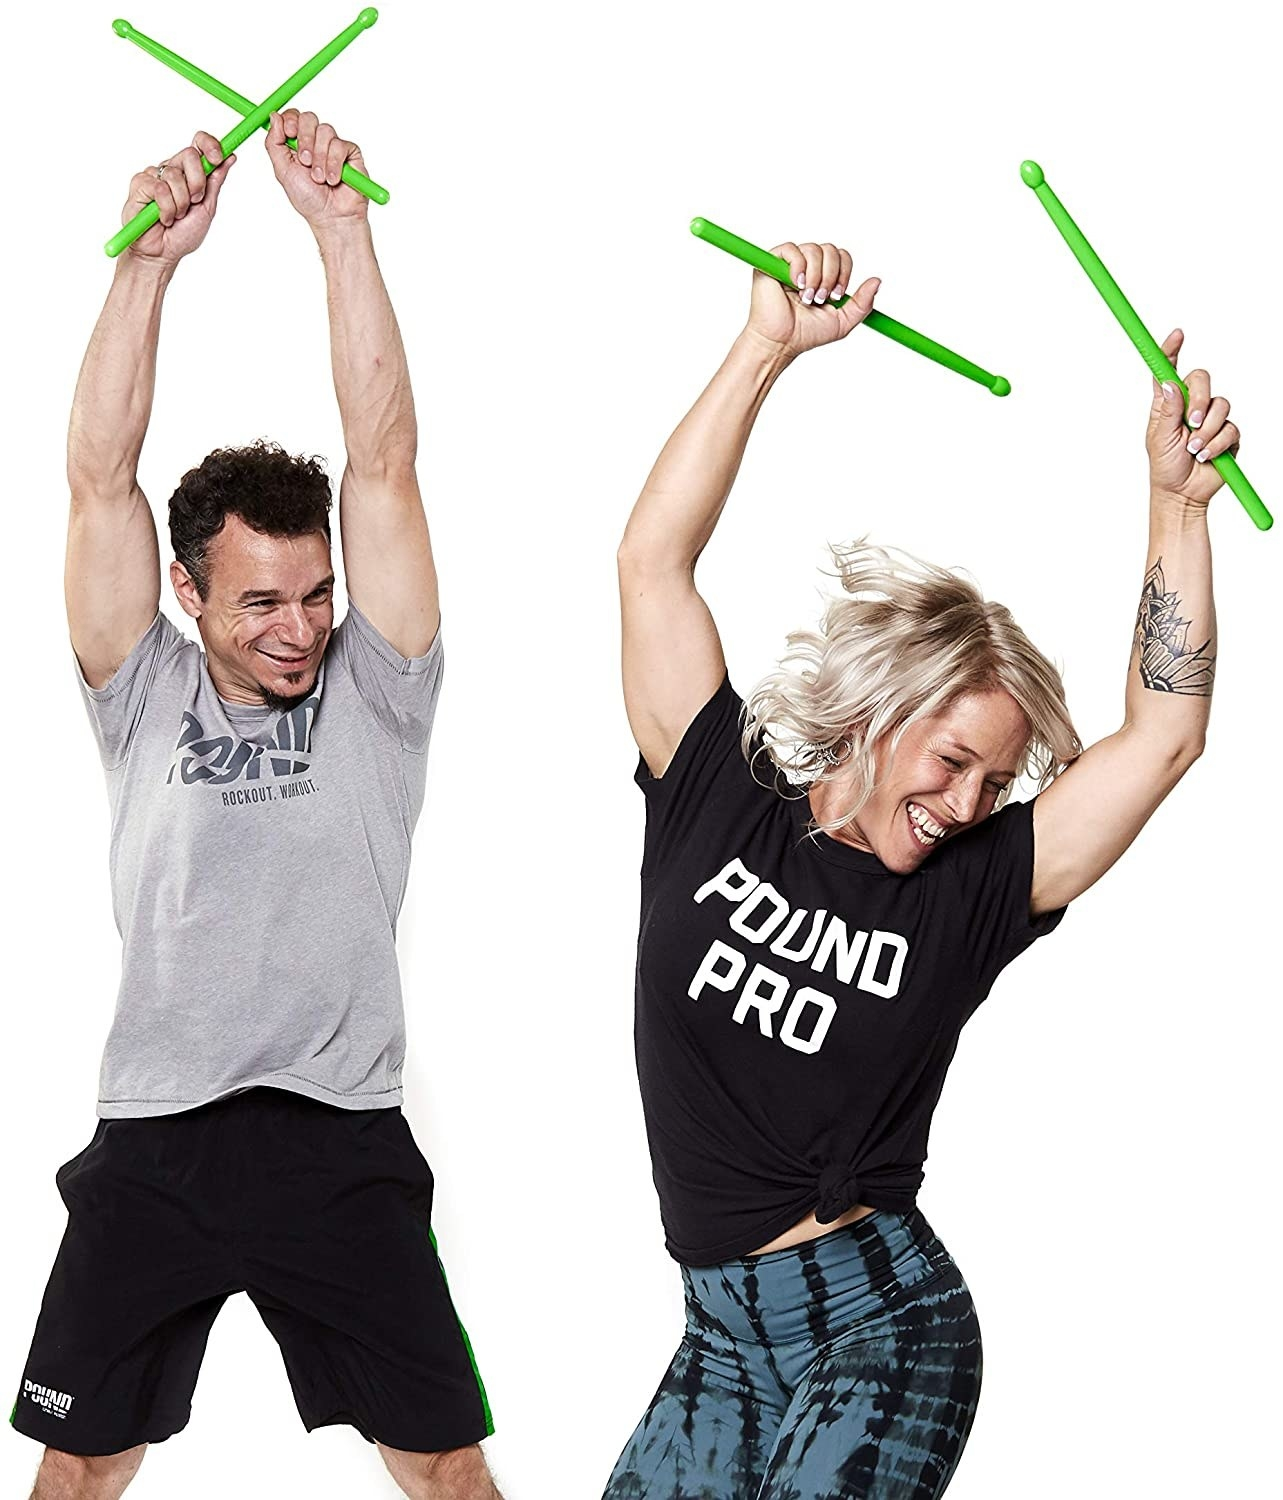 Two models using the green sticks